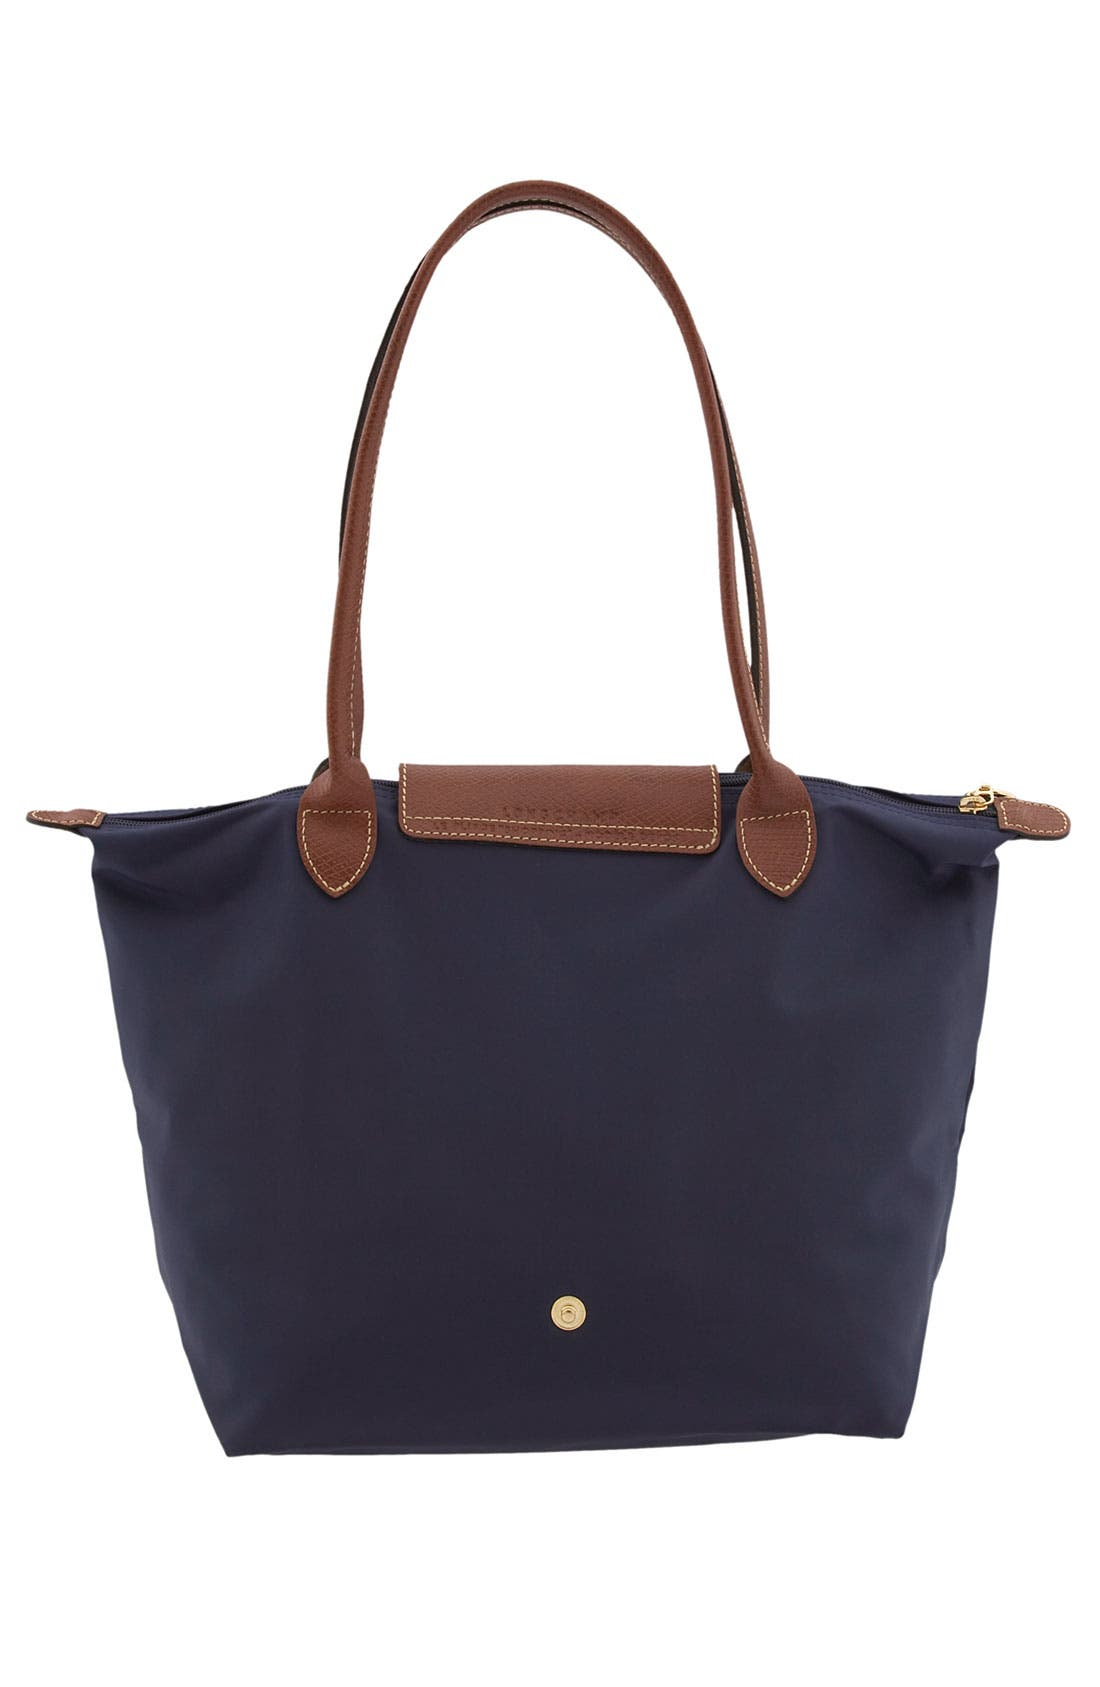 'Small Le Pliage' Tote,                             Alternate thumbnail 3, color,                             456